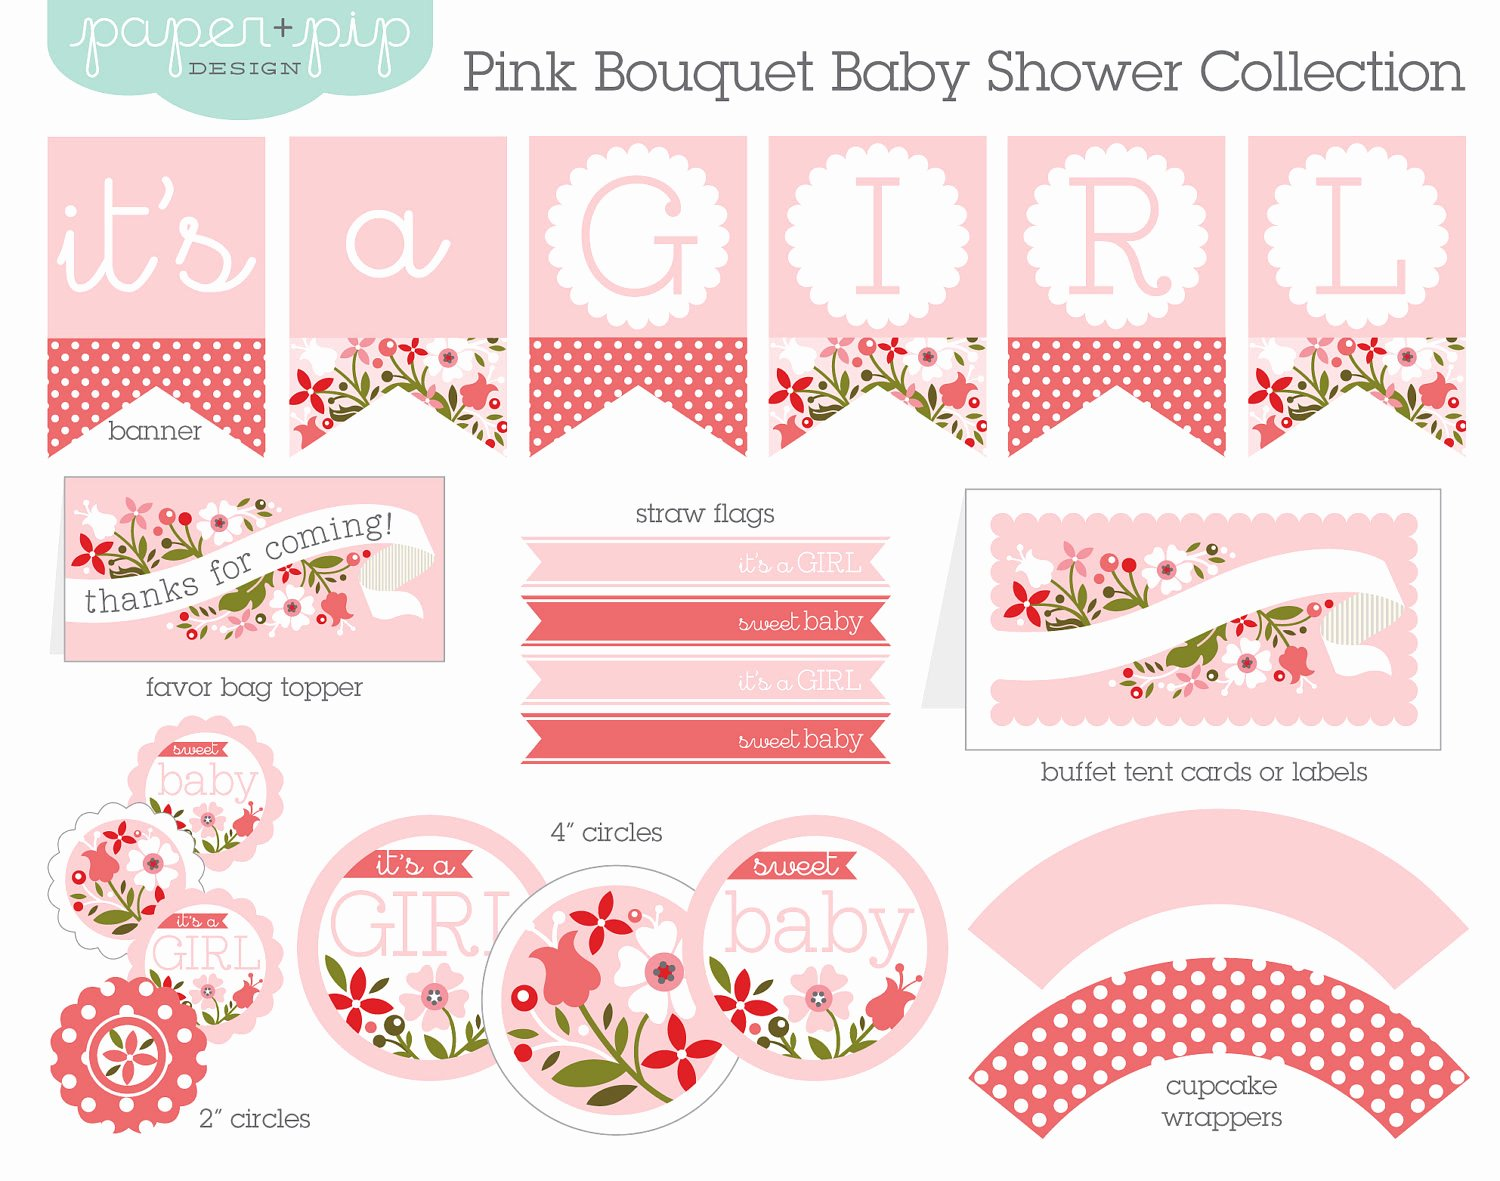 Free Printable Baby Shower Labels Inspirational Baby Shower Decorations Printable Pink Bouquet by Paperandpip